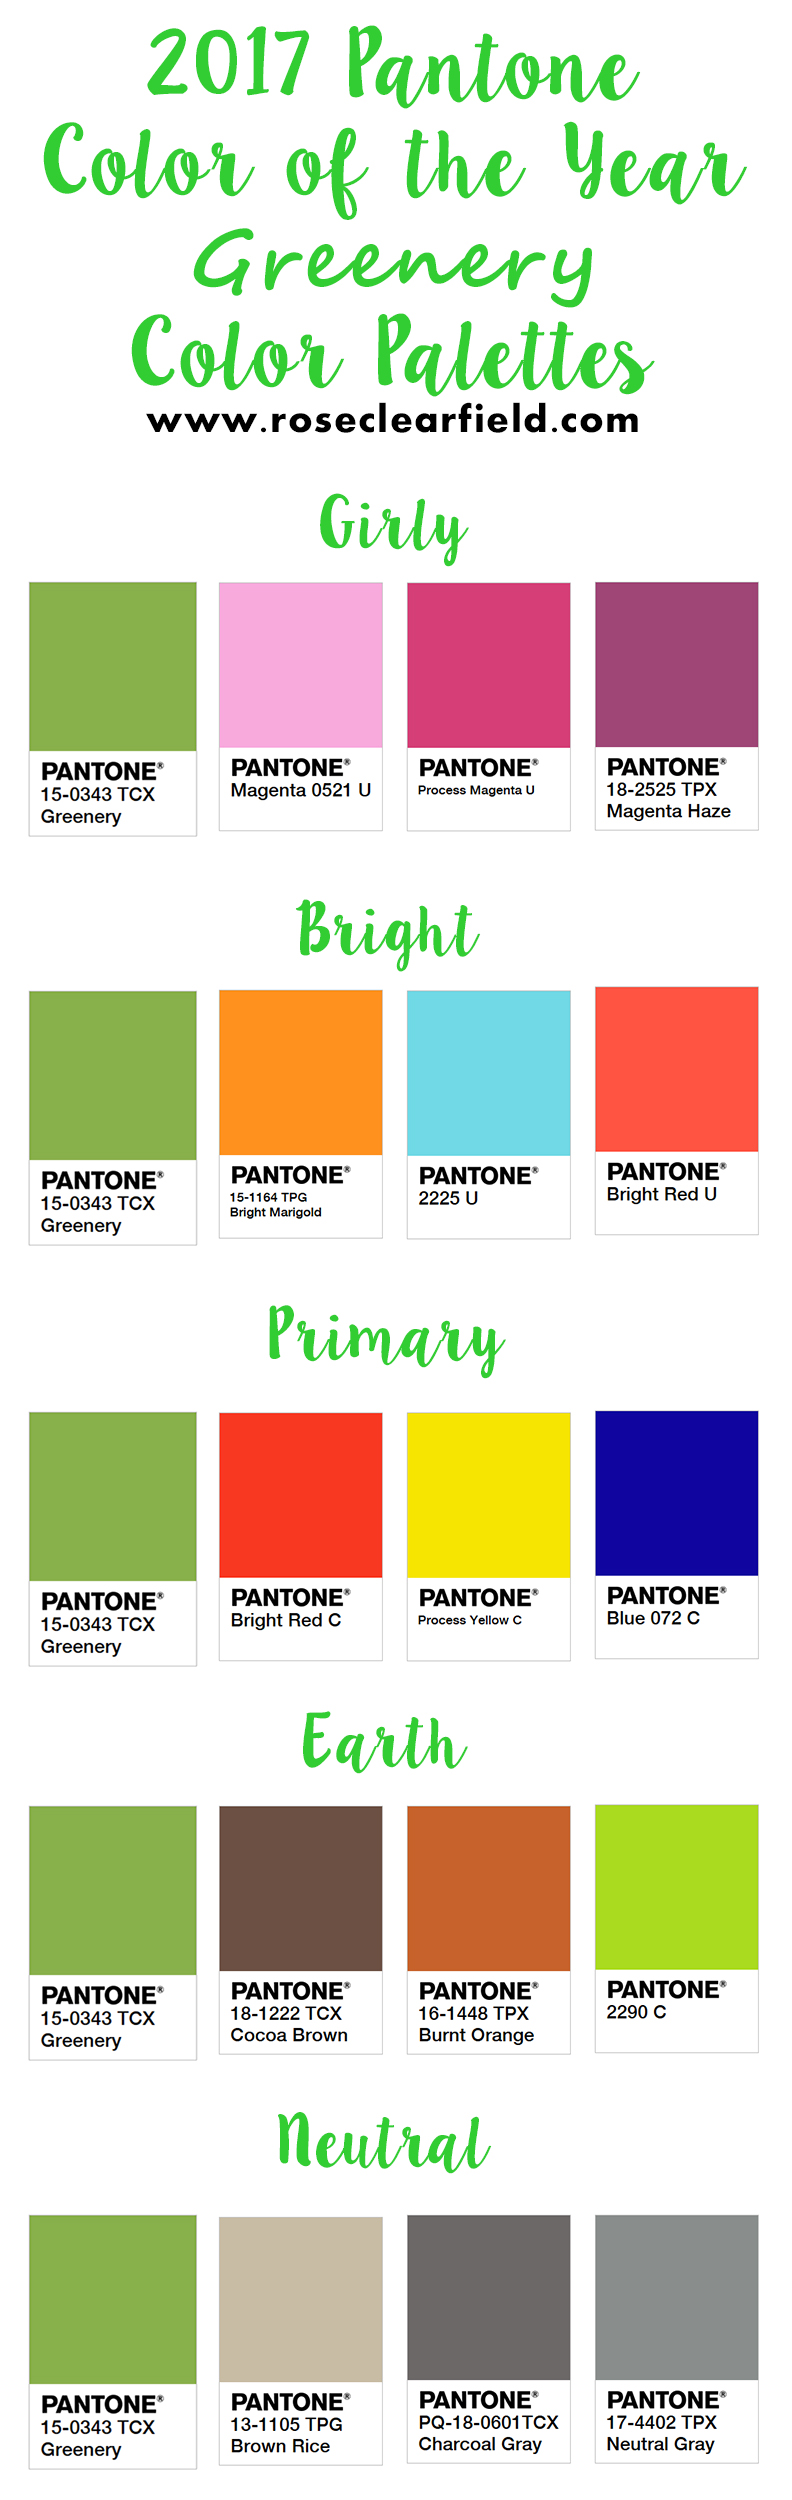 2017 Pantone Color of the Year - Color Palettes | https://www.roseclearfield.com